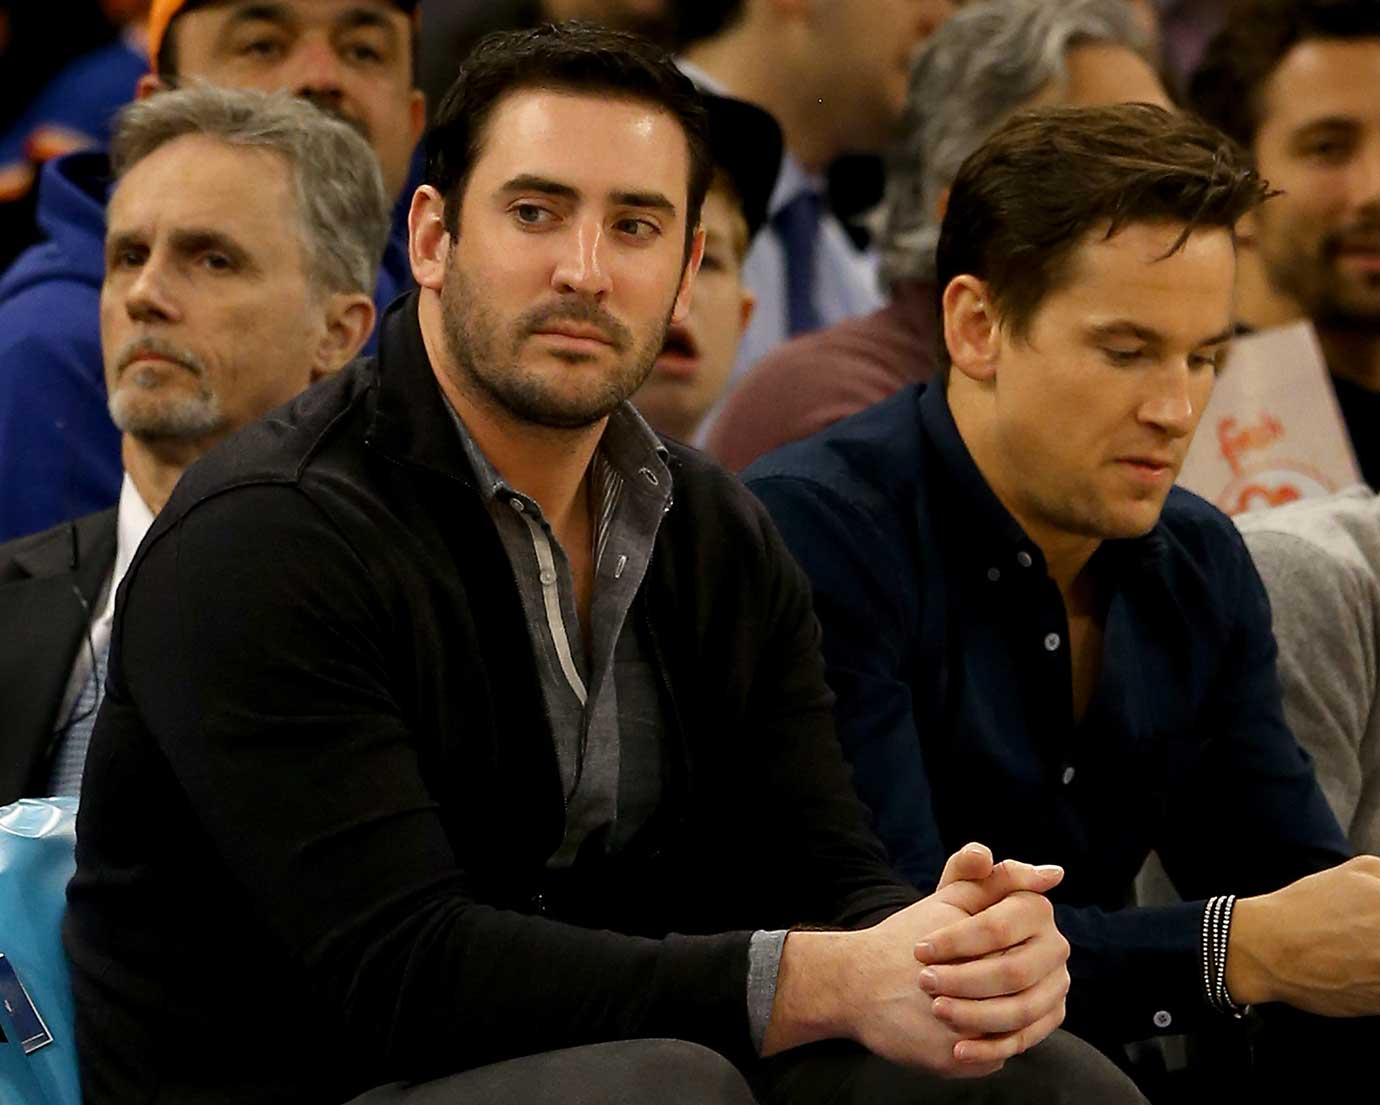 New York Mets pitcher Matt Harvey at the New York Knicks-Oklahoma City Thunder game.